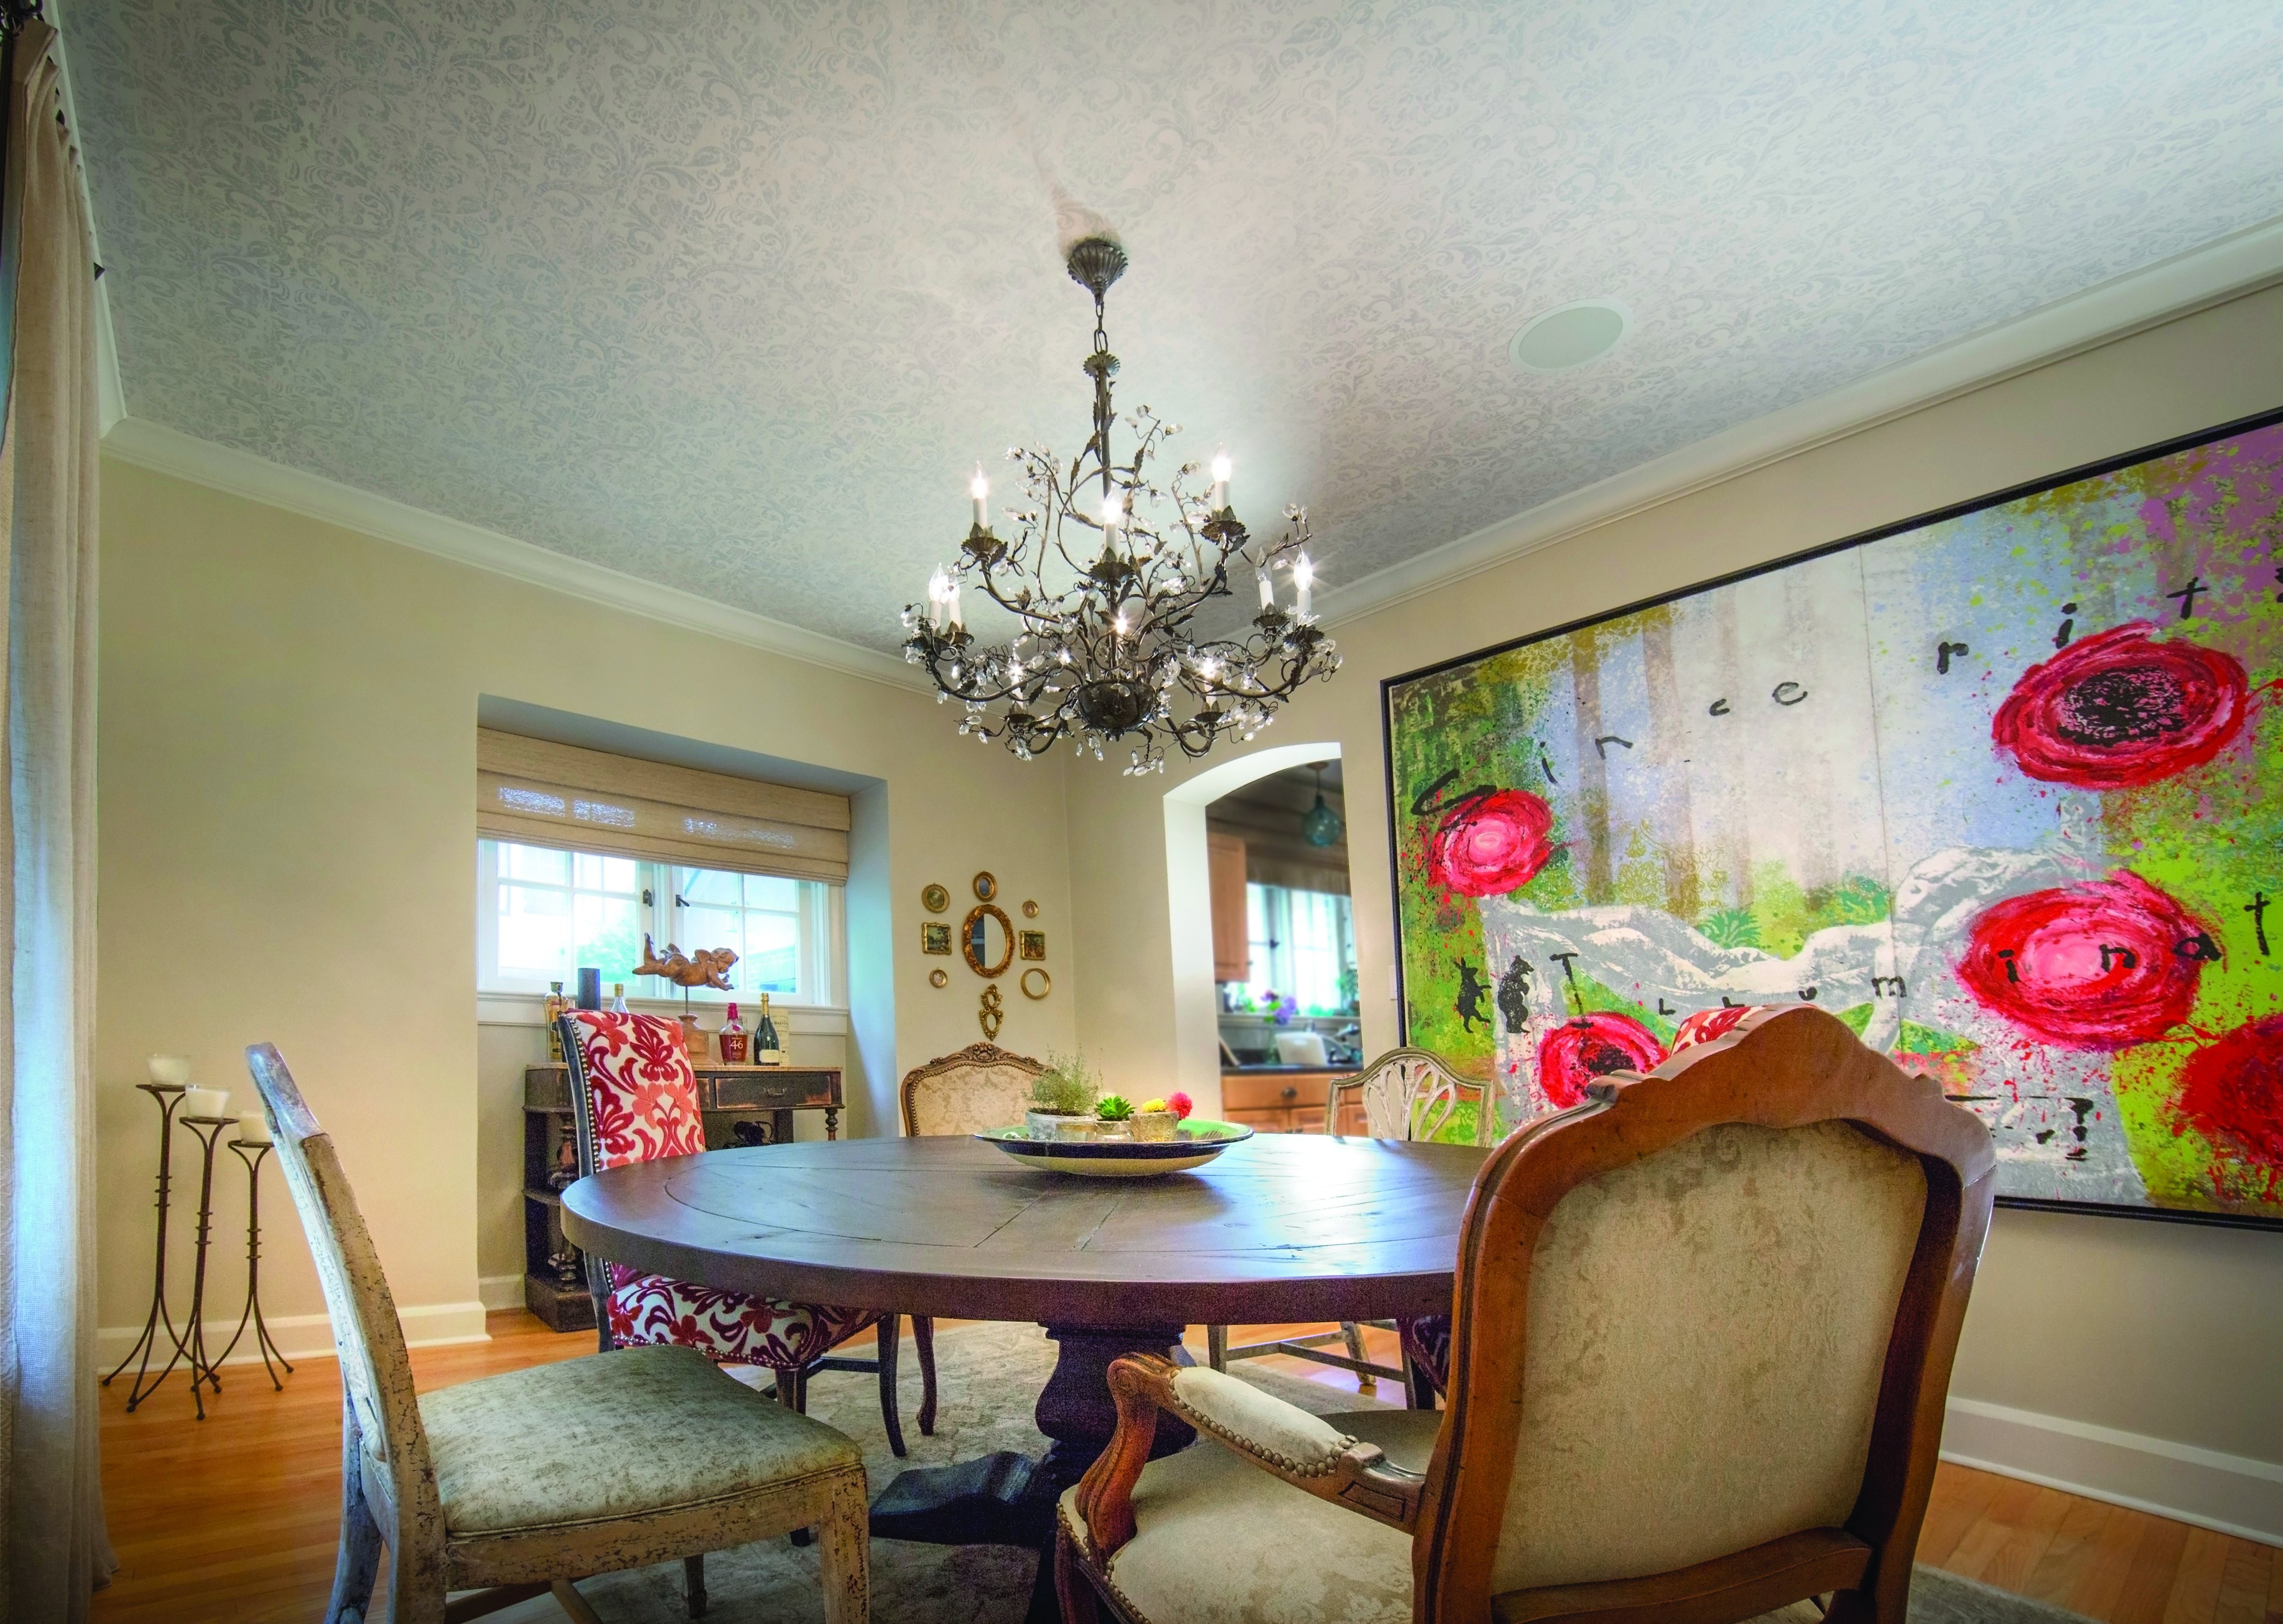 Large Dining Room Wall Decor Best Of 14 Creative Dining Room Wall Decor Ideas